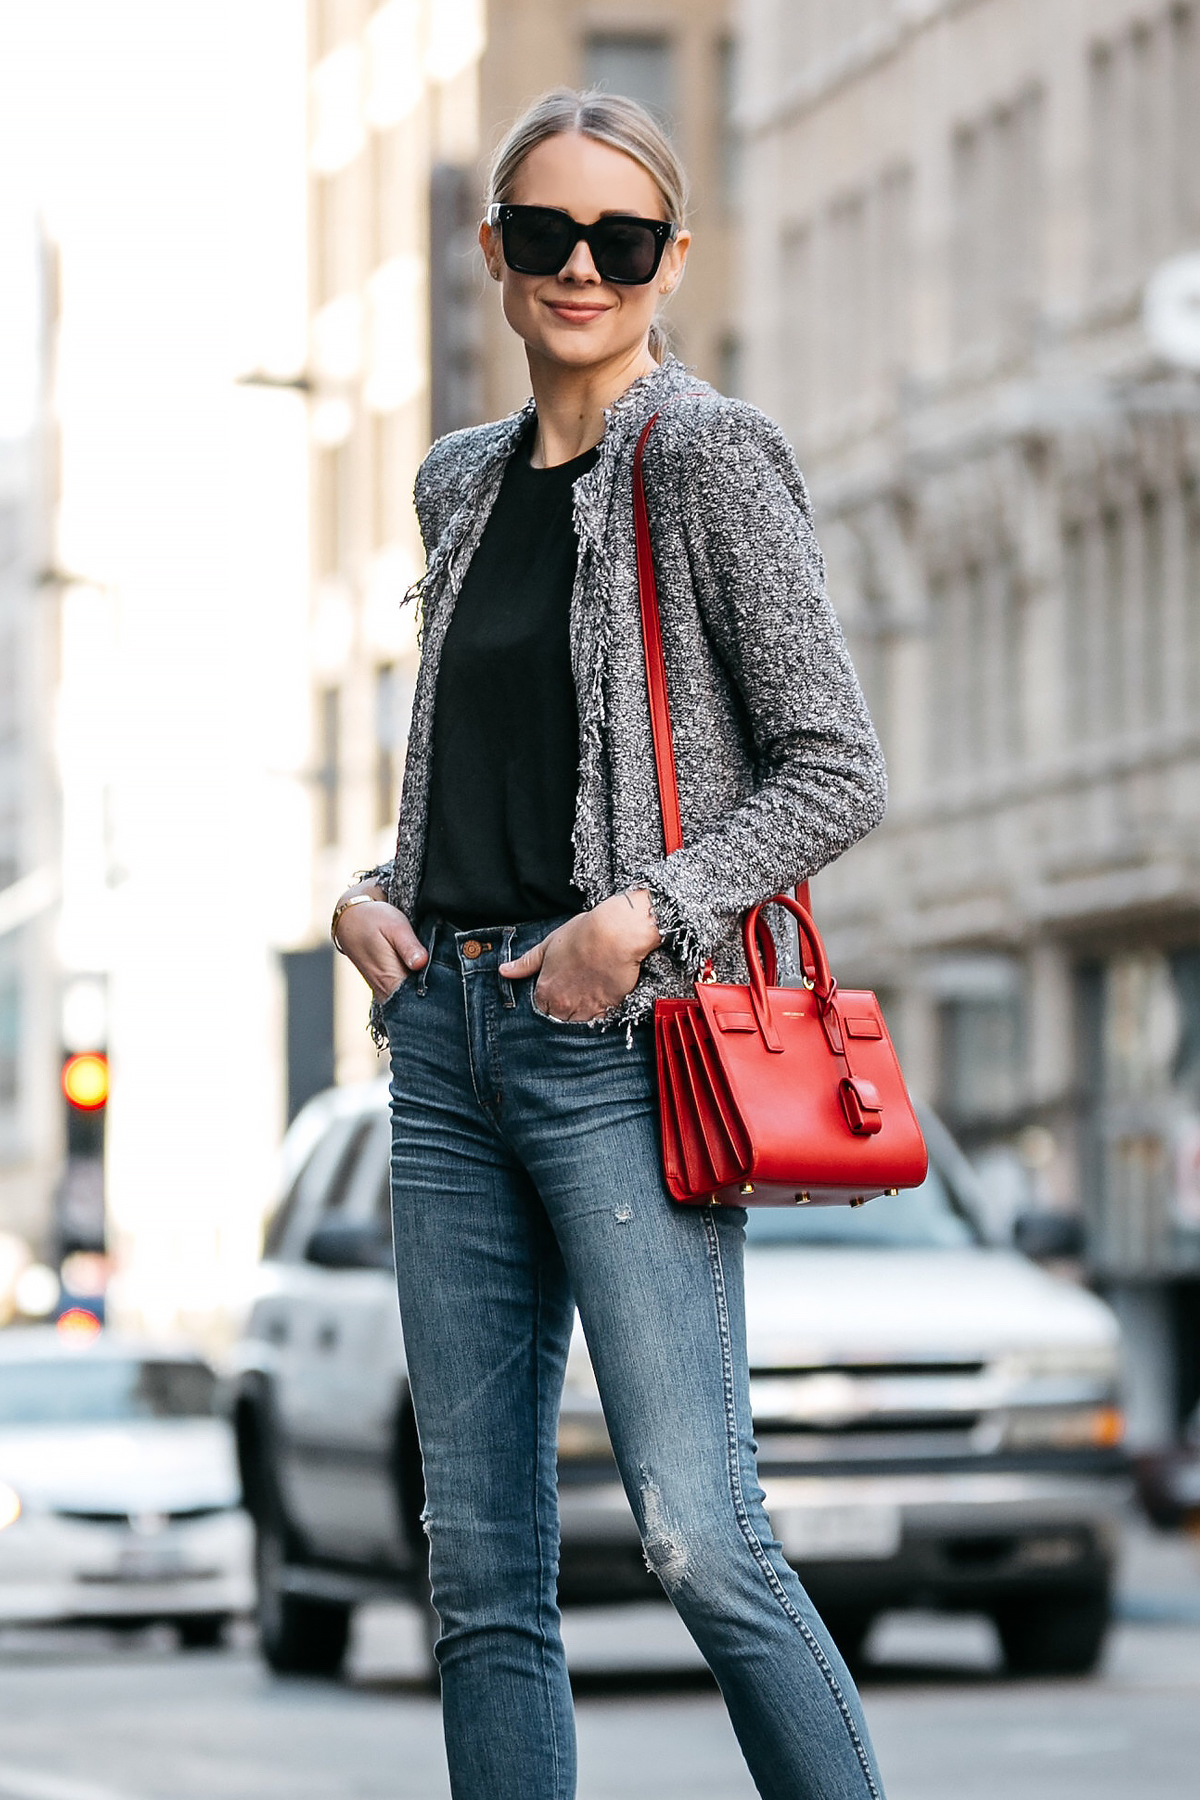 Blonde Woman Wearing IRO Shavanix Grey Tweed Jacket Black Top Denim Ripped Skinny Jeans Saint Laurent Sac De Jour Red Handbag Fashion Jackson Dallas Blogger Fashion Blogger Street Style